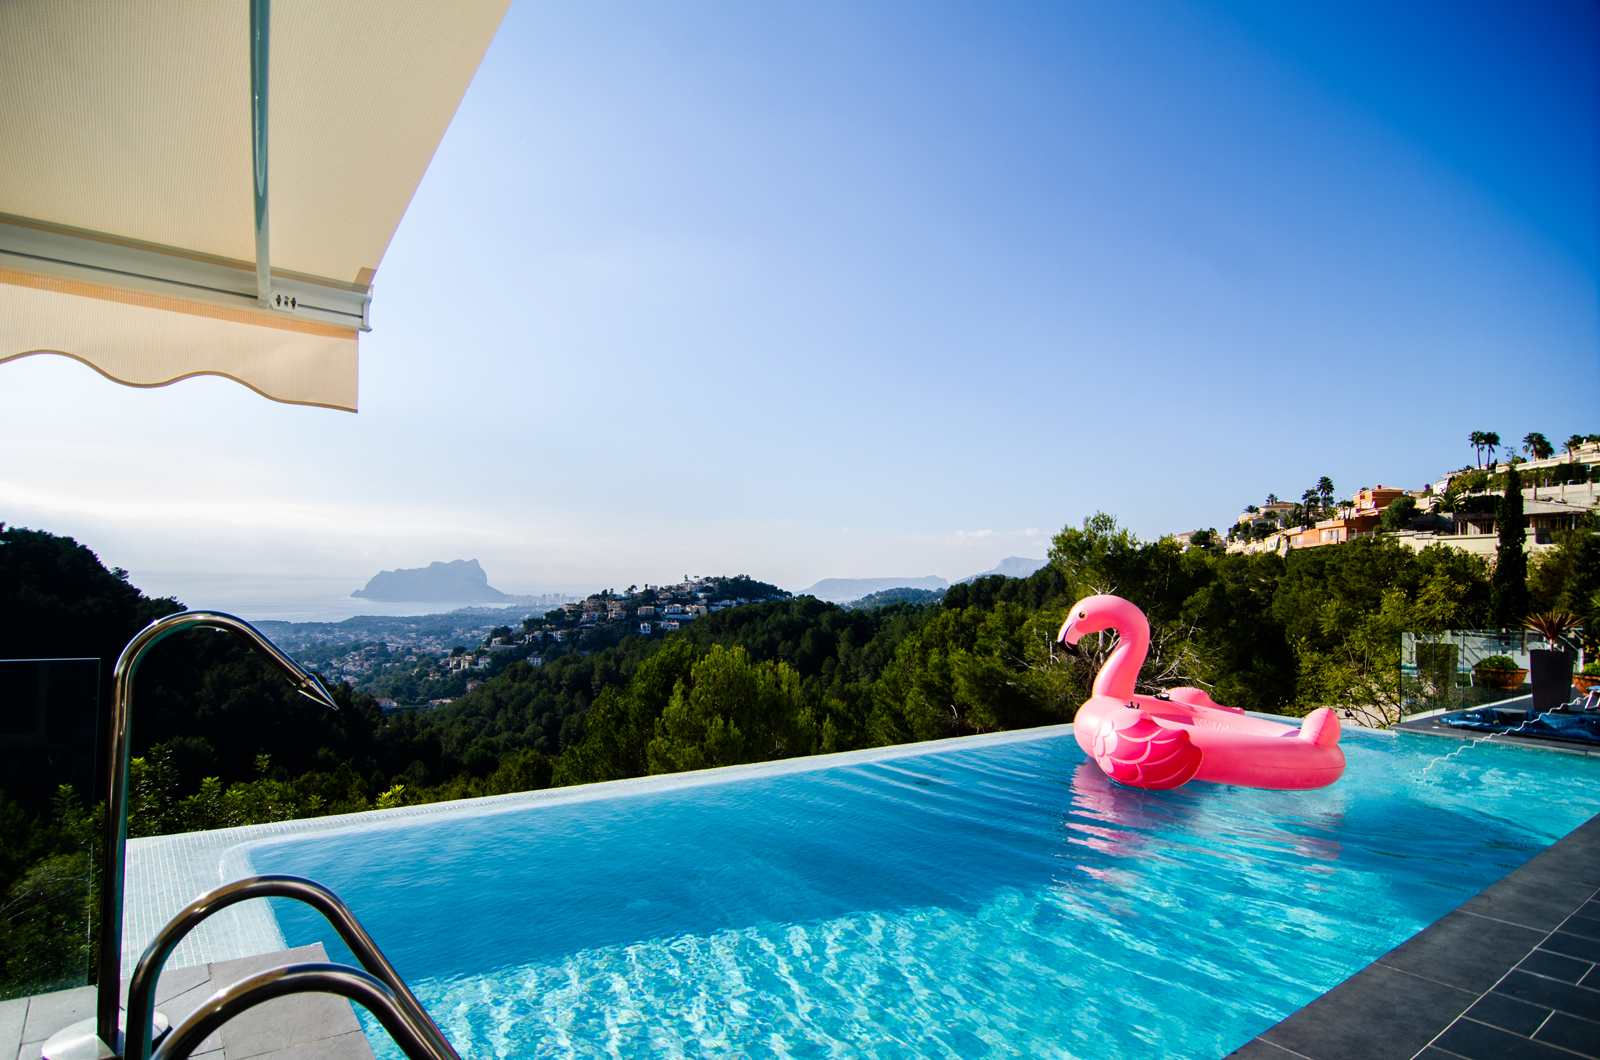 luxury villa rental, Spain, ESPMOR 741